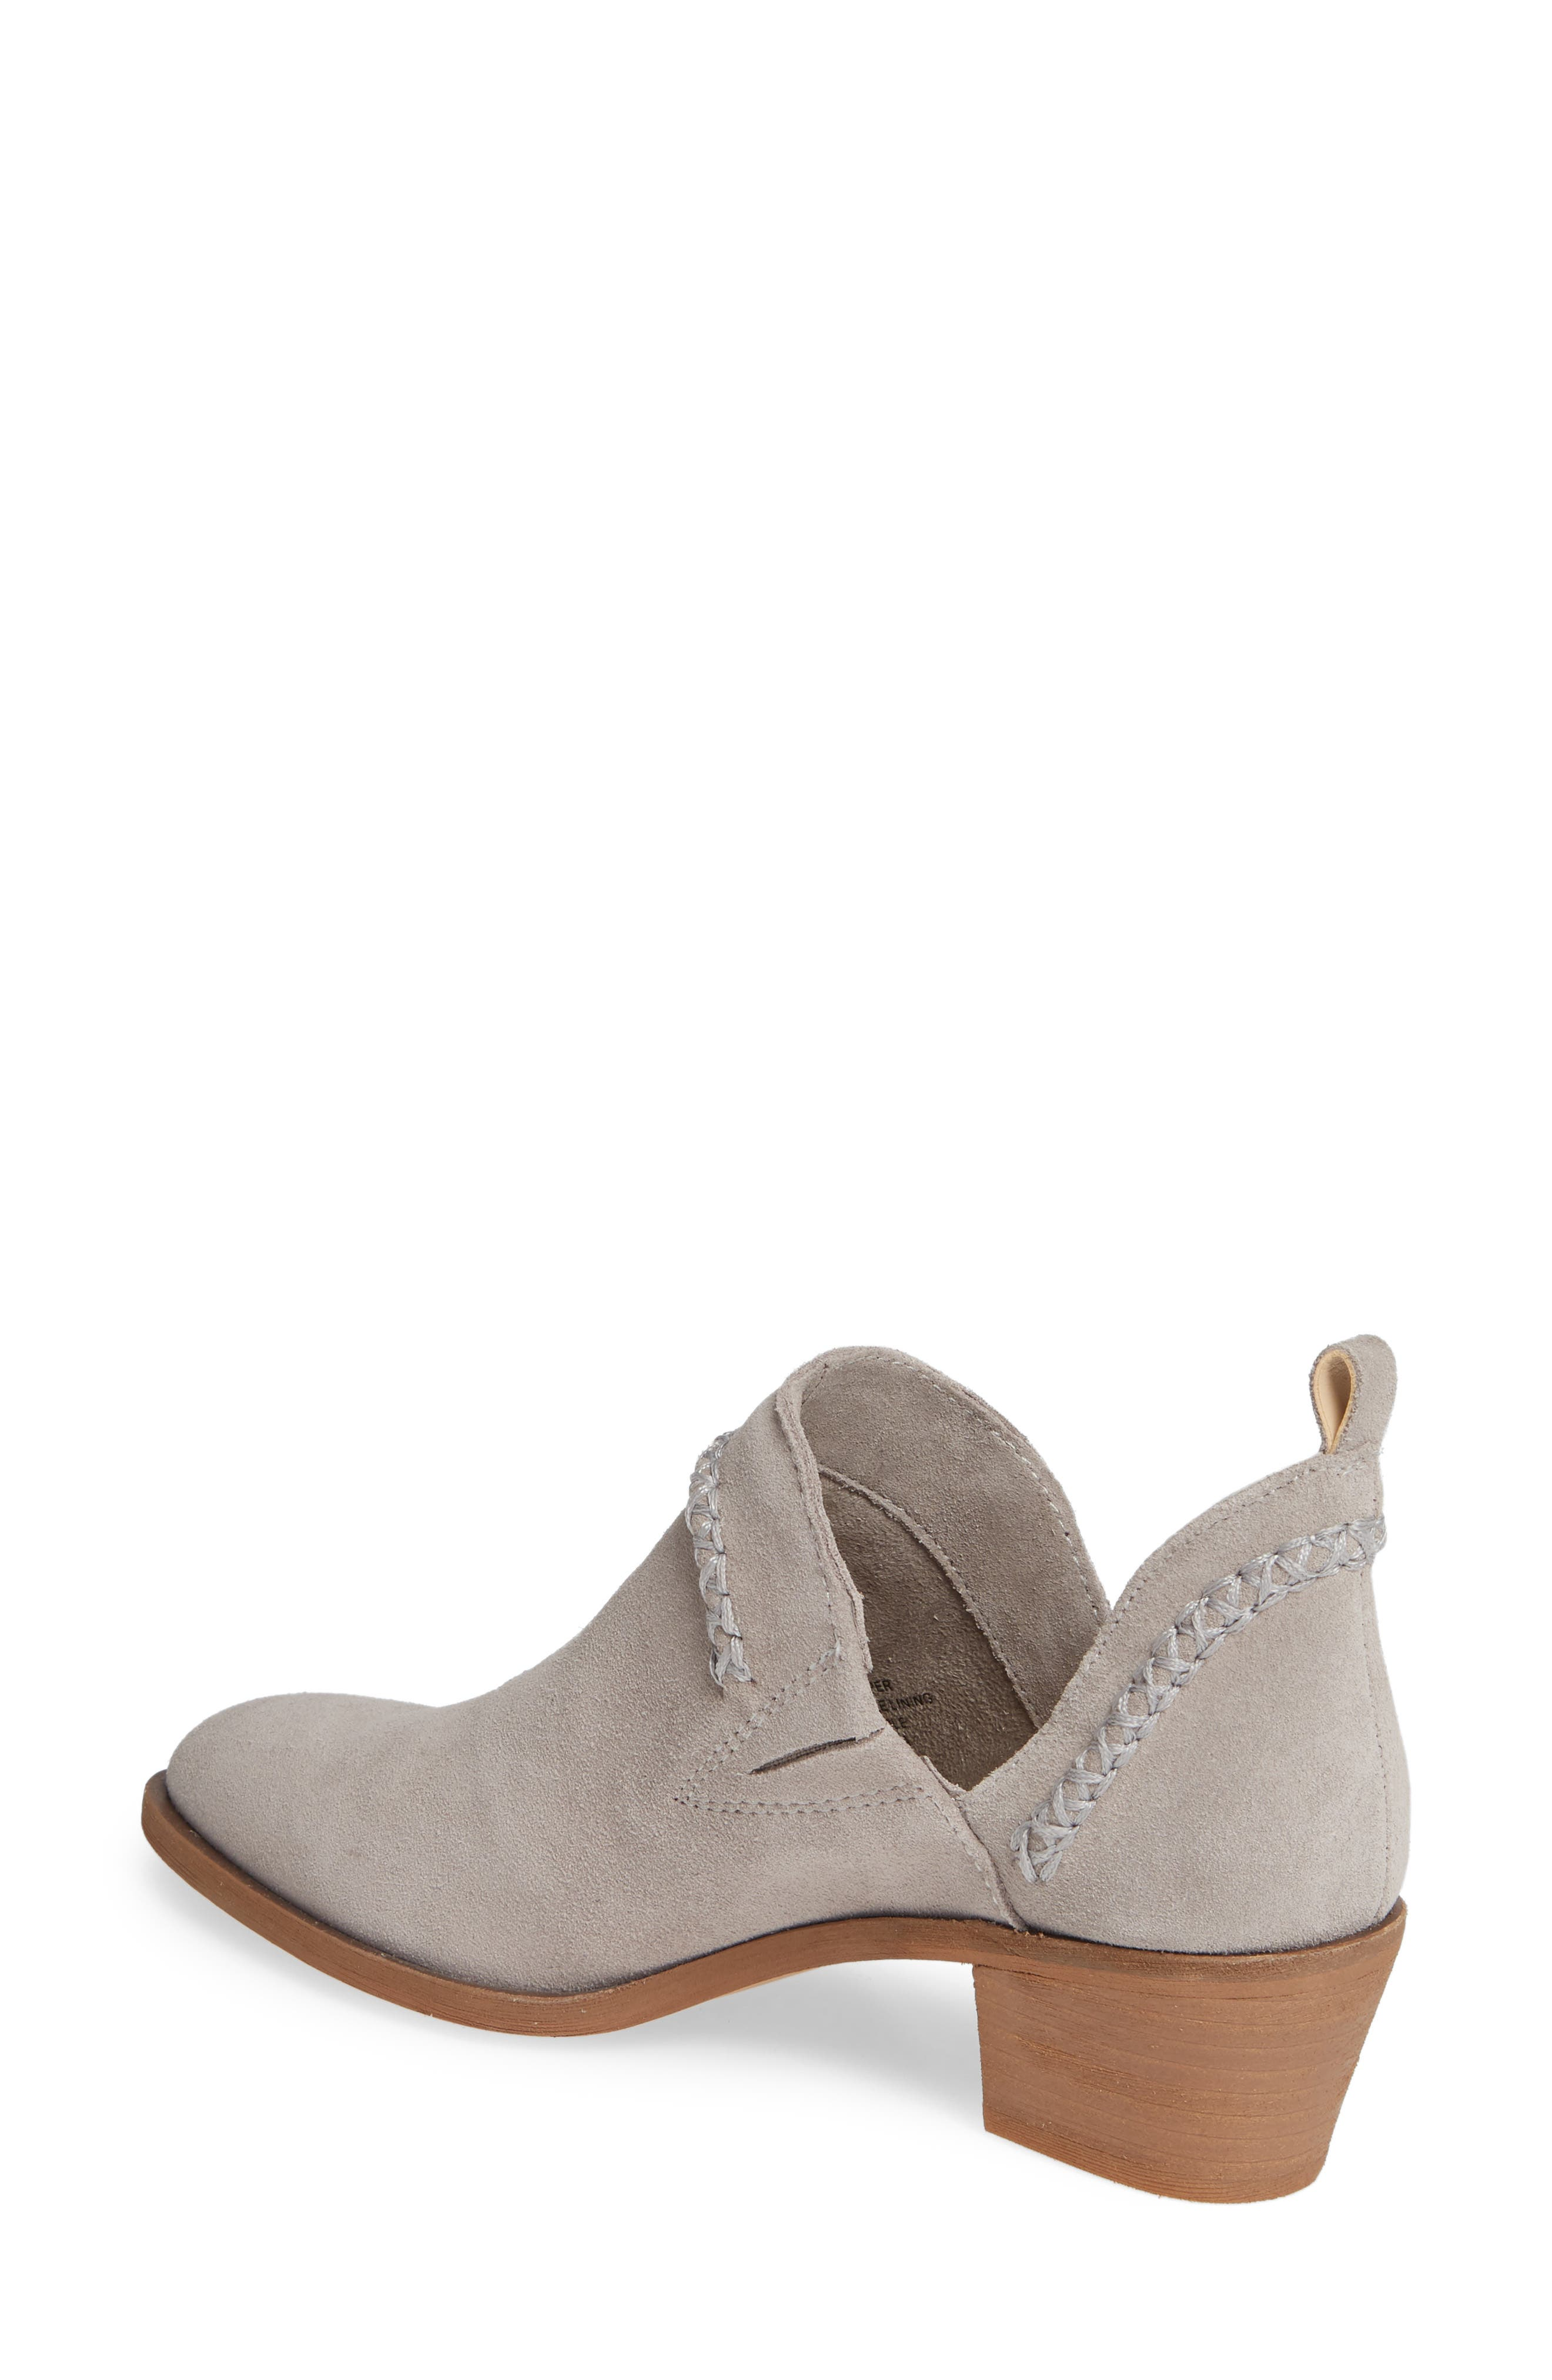 SOLE SOCIETY, Nikkie Bootie, Alternate thumbnail 2, color, SOFT GREY SUEDE